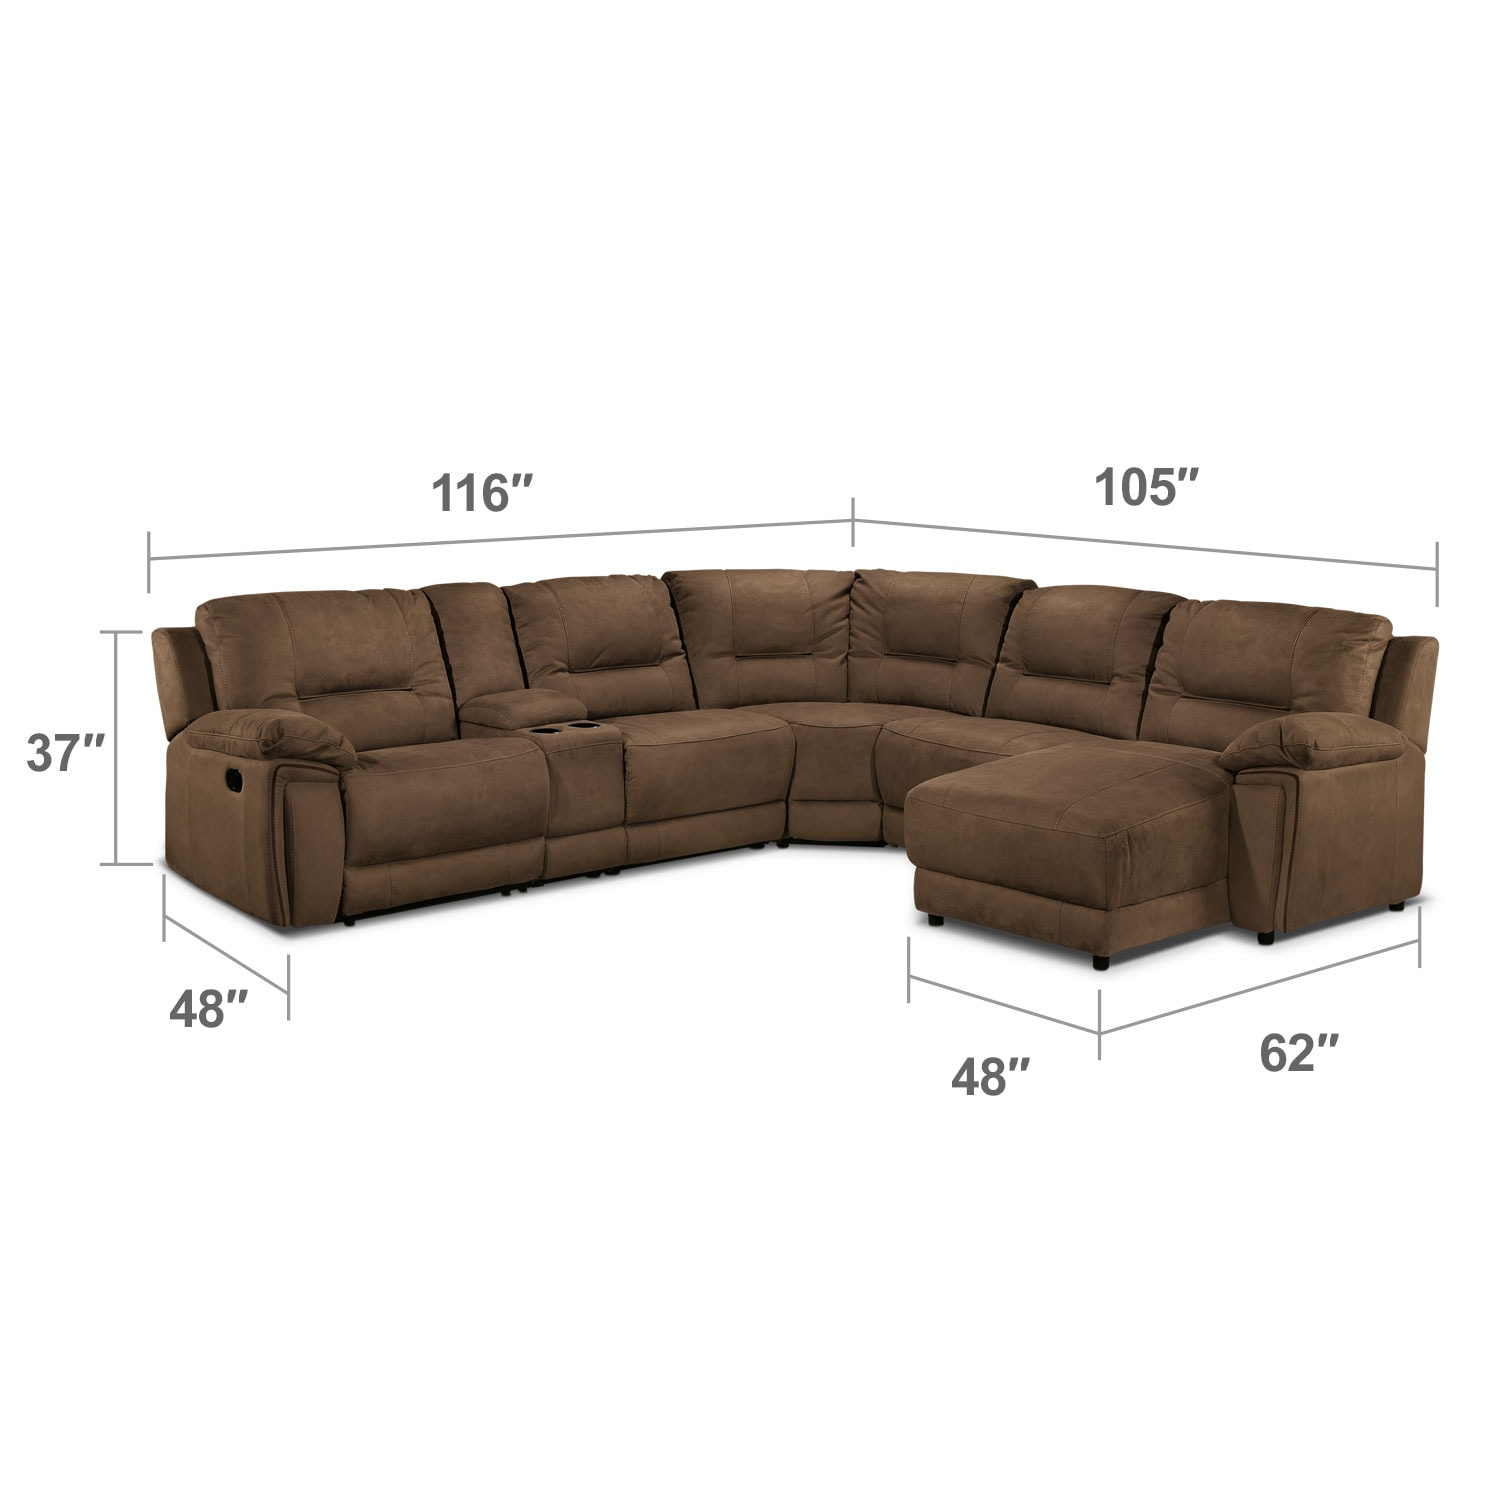 Living Room Furniture - Pasadena 6-Piece Right-Facing Reclining Sectional - Hazelnut